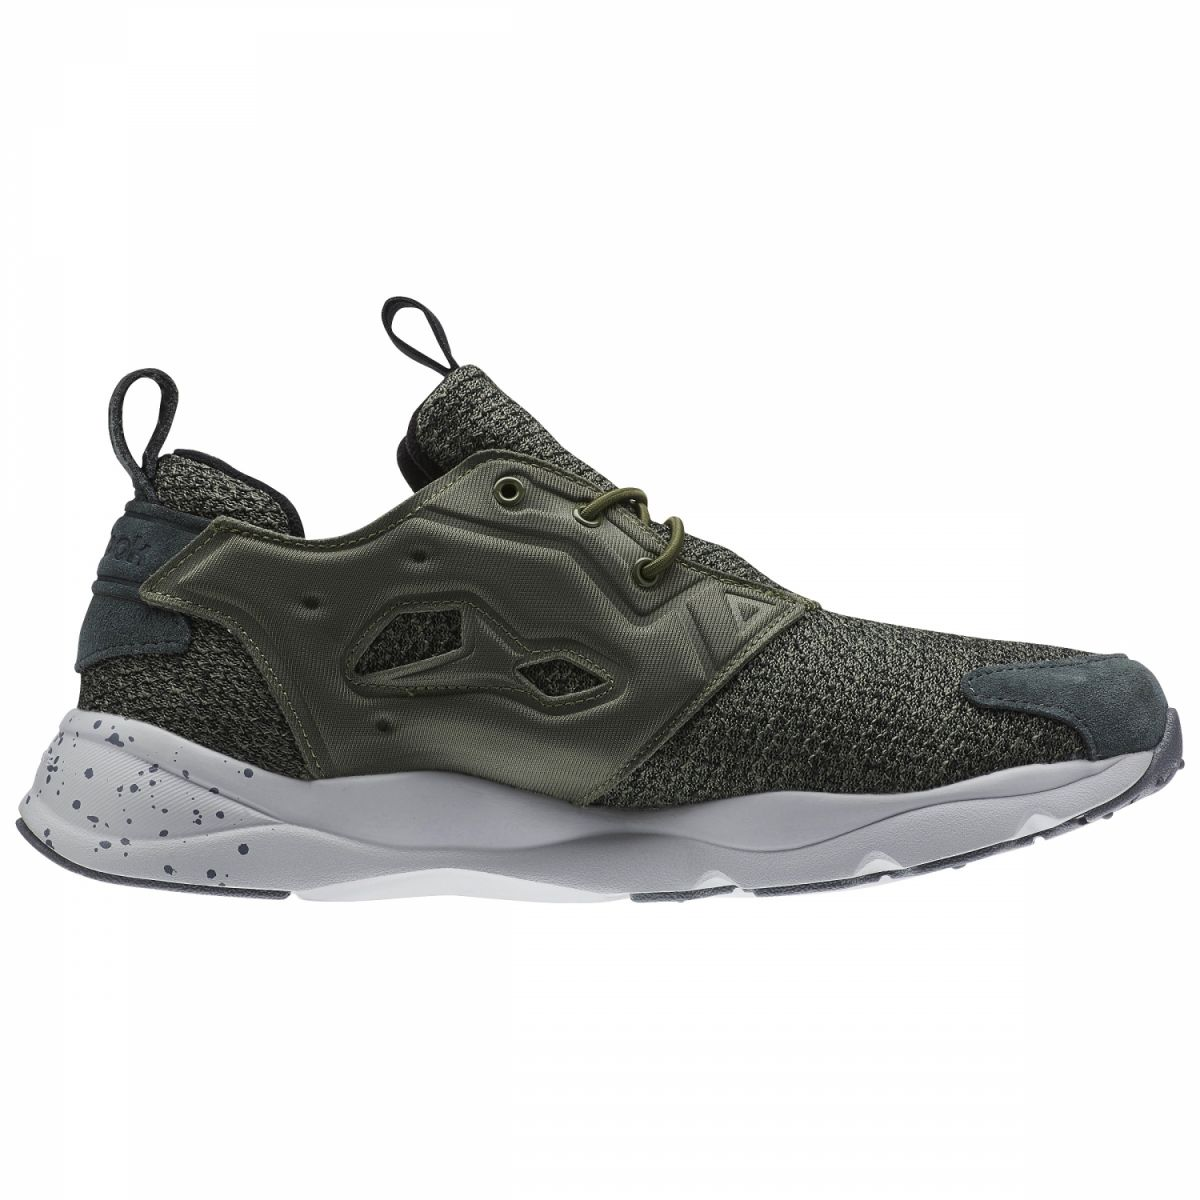 reebok furylite gw sneaker herren freizeitschuhe olive aq9673 sport klingenmaier. Black Bedroom Furniture Sets. Home Design Ideas